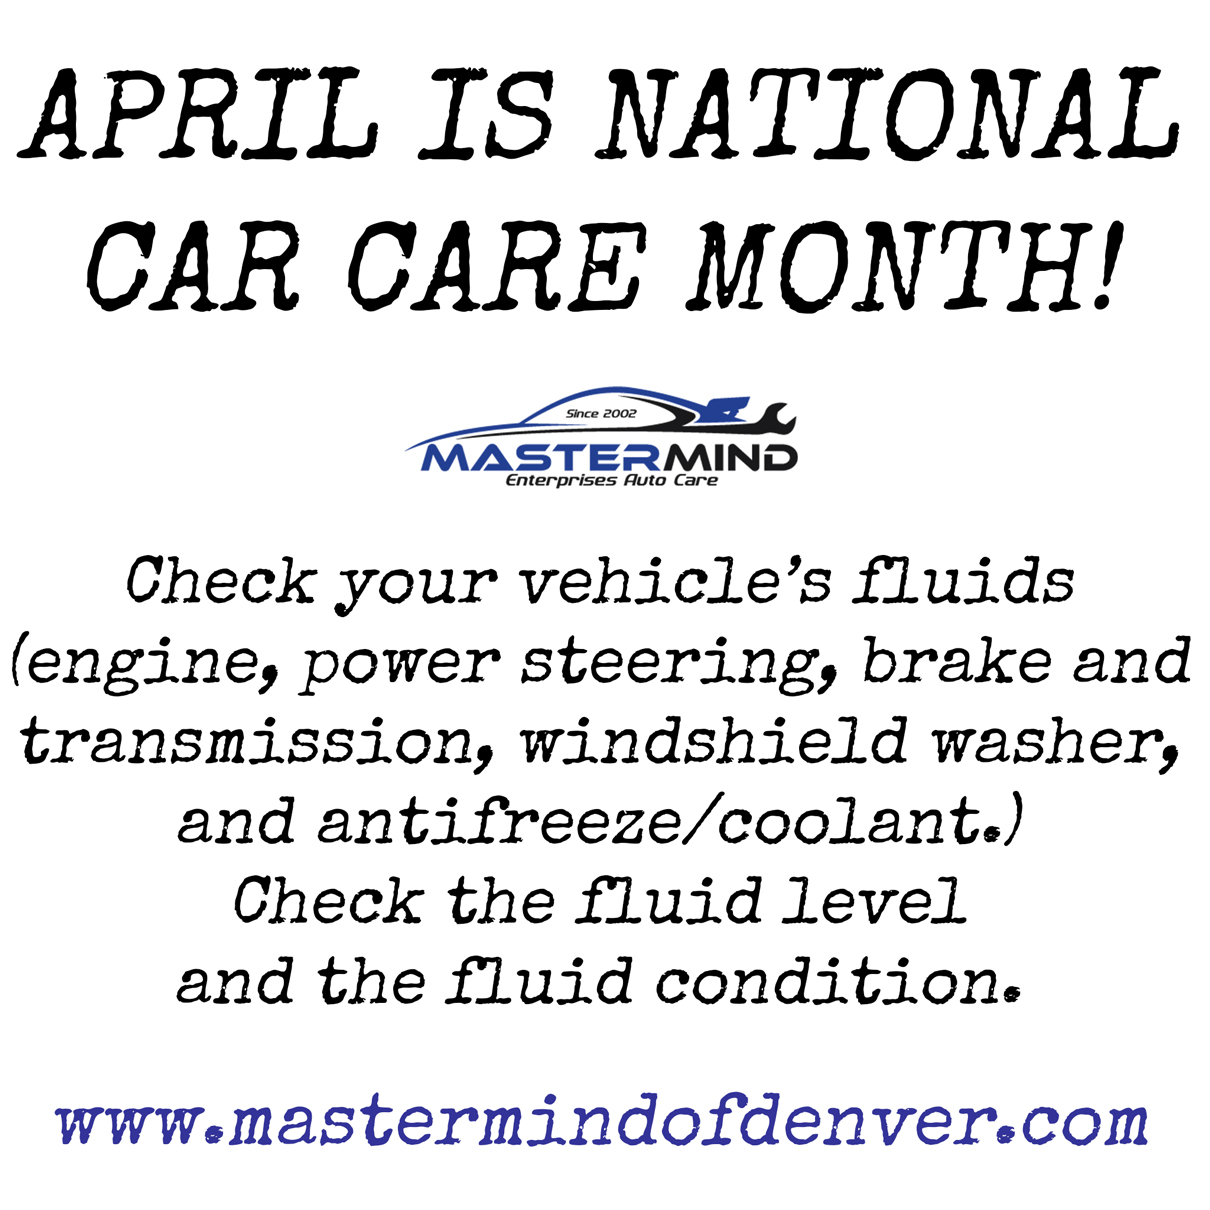 April is National Car Care Month! Check your vehicle's fluids - engine, power steering, brake, and transmission, windshield washer, and antifreeze/coolant. Check the fluid level and condition.